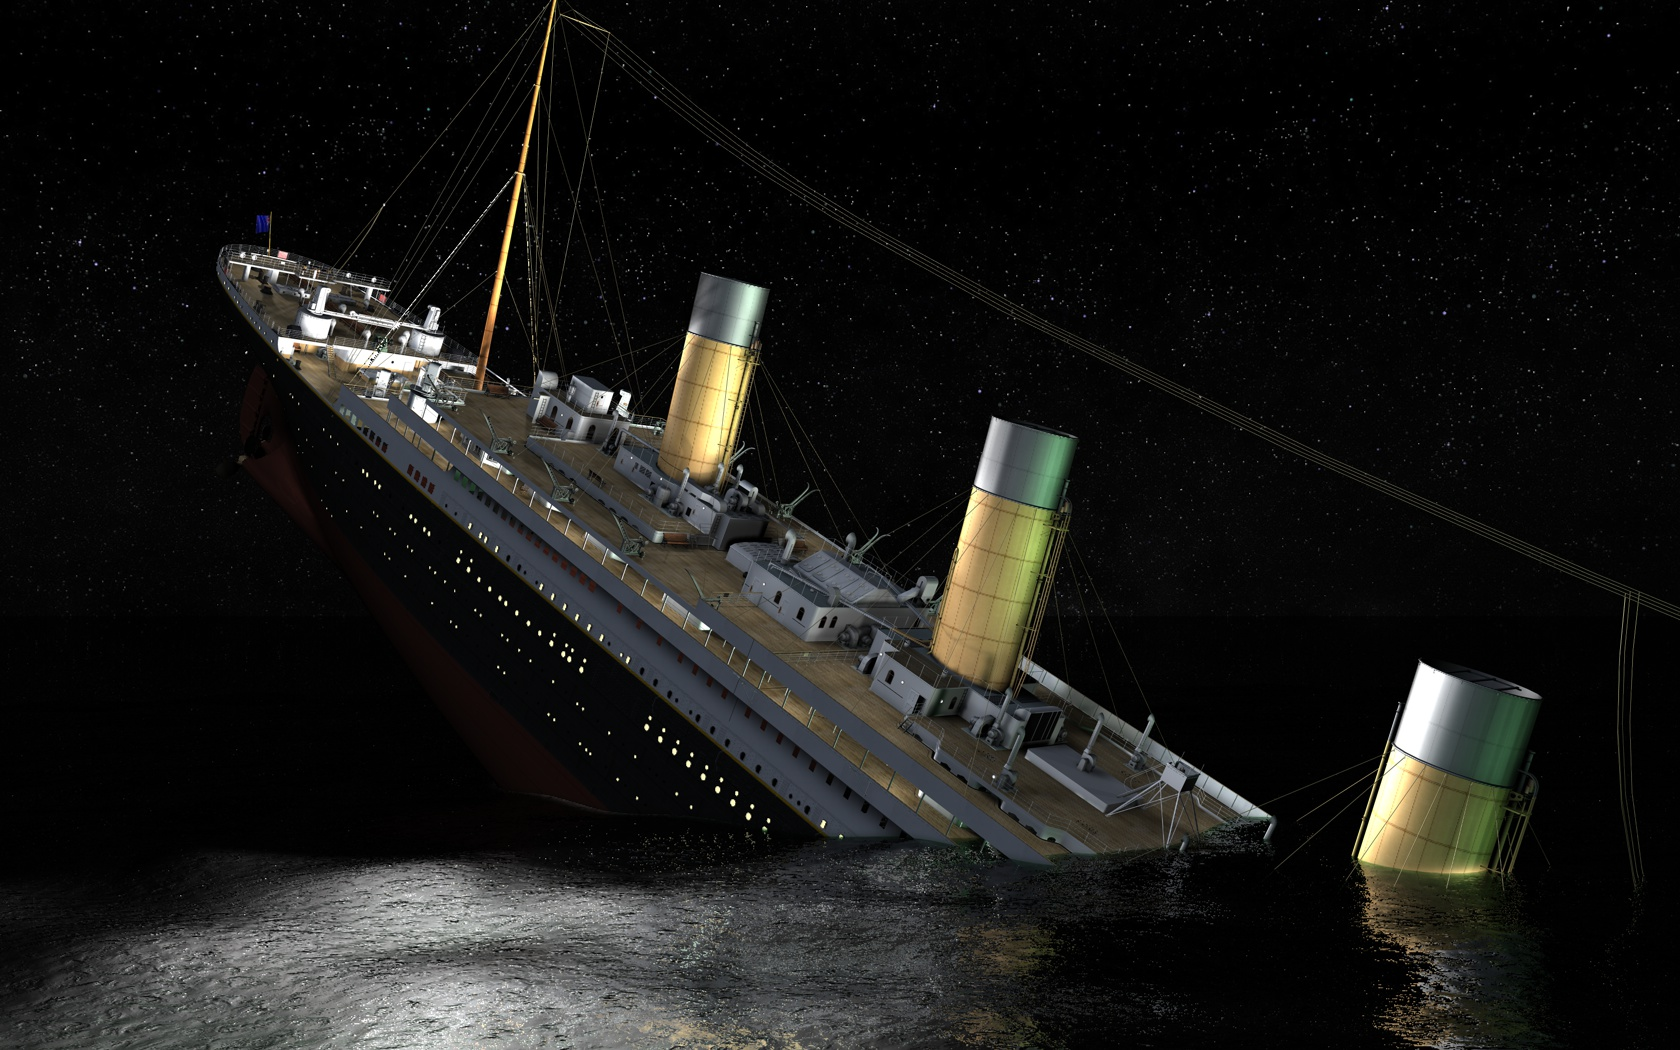 the sinking of the titanic The sinking of the titanic occurred on april 15, 1912 in the north atlantic ocean, four days into the ship's maiden voyage from southampton to new york city the largest passenger liner in service at the time, titanic had an estimated 2,224 people on board when she hit an iceberg.